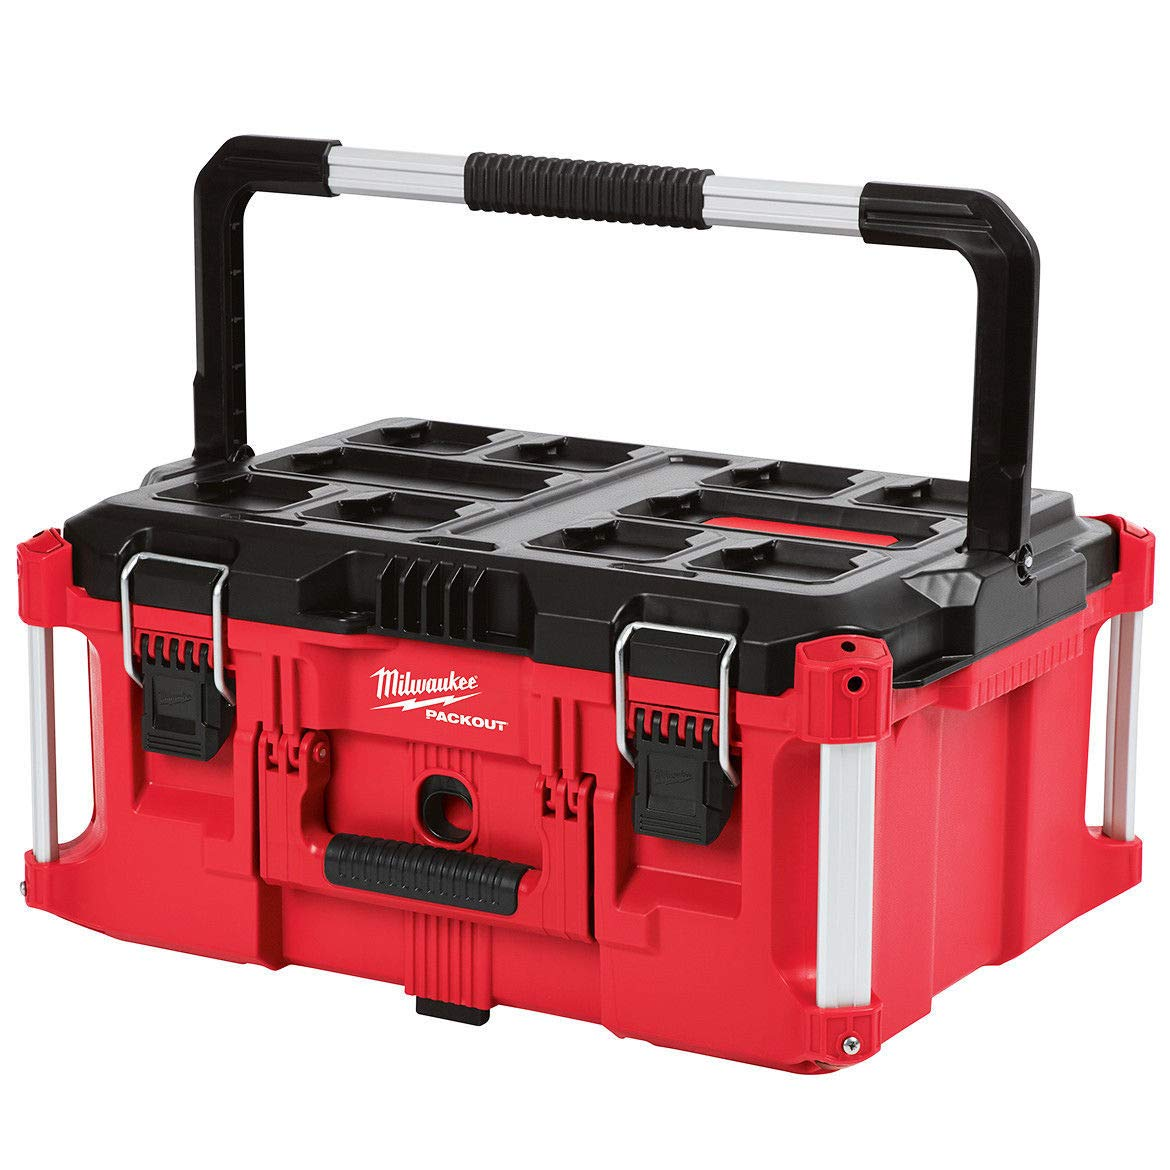 928d368f947 Milwaukee Electric Tool 48-22-8425 Pack out